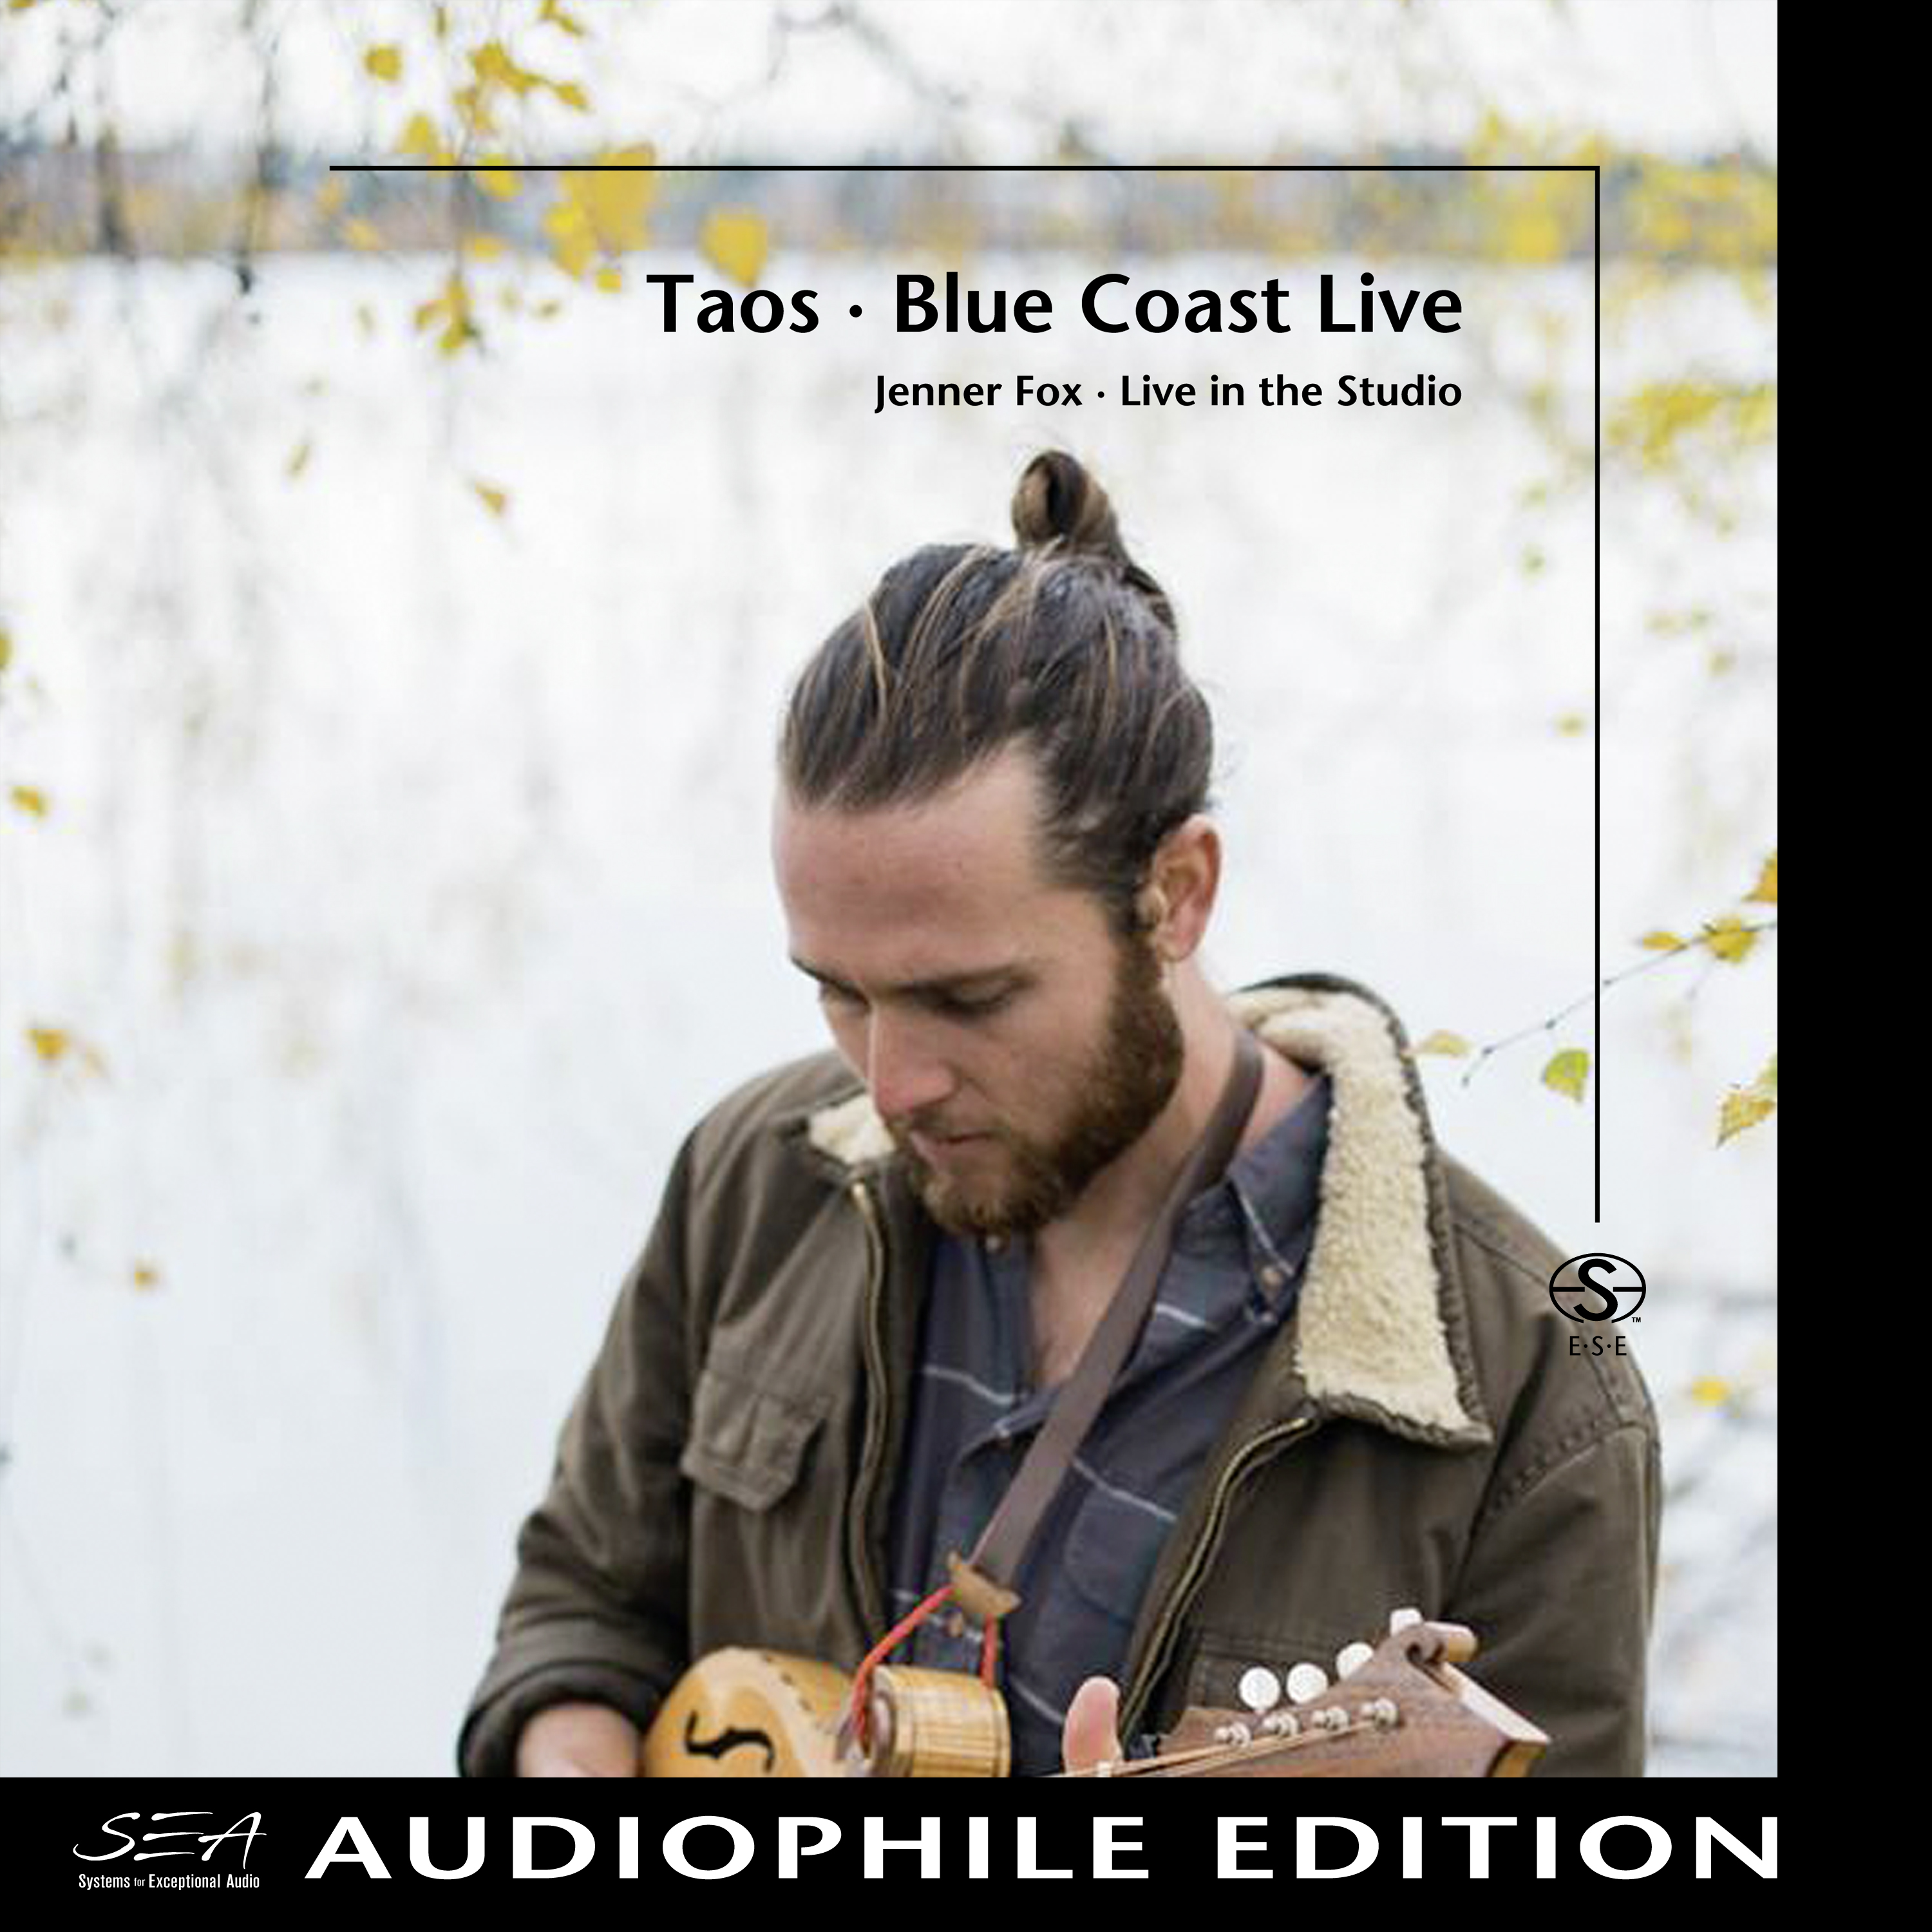 Jenner Fox - Taos-Blue Coast Live - Cover Image